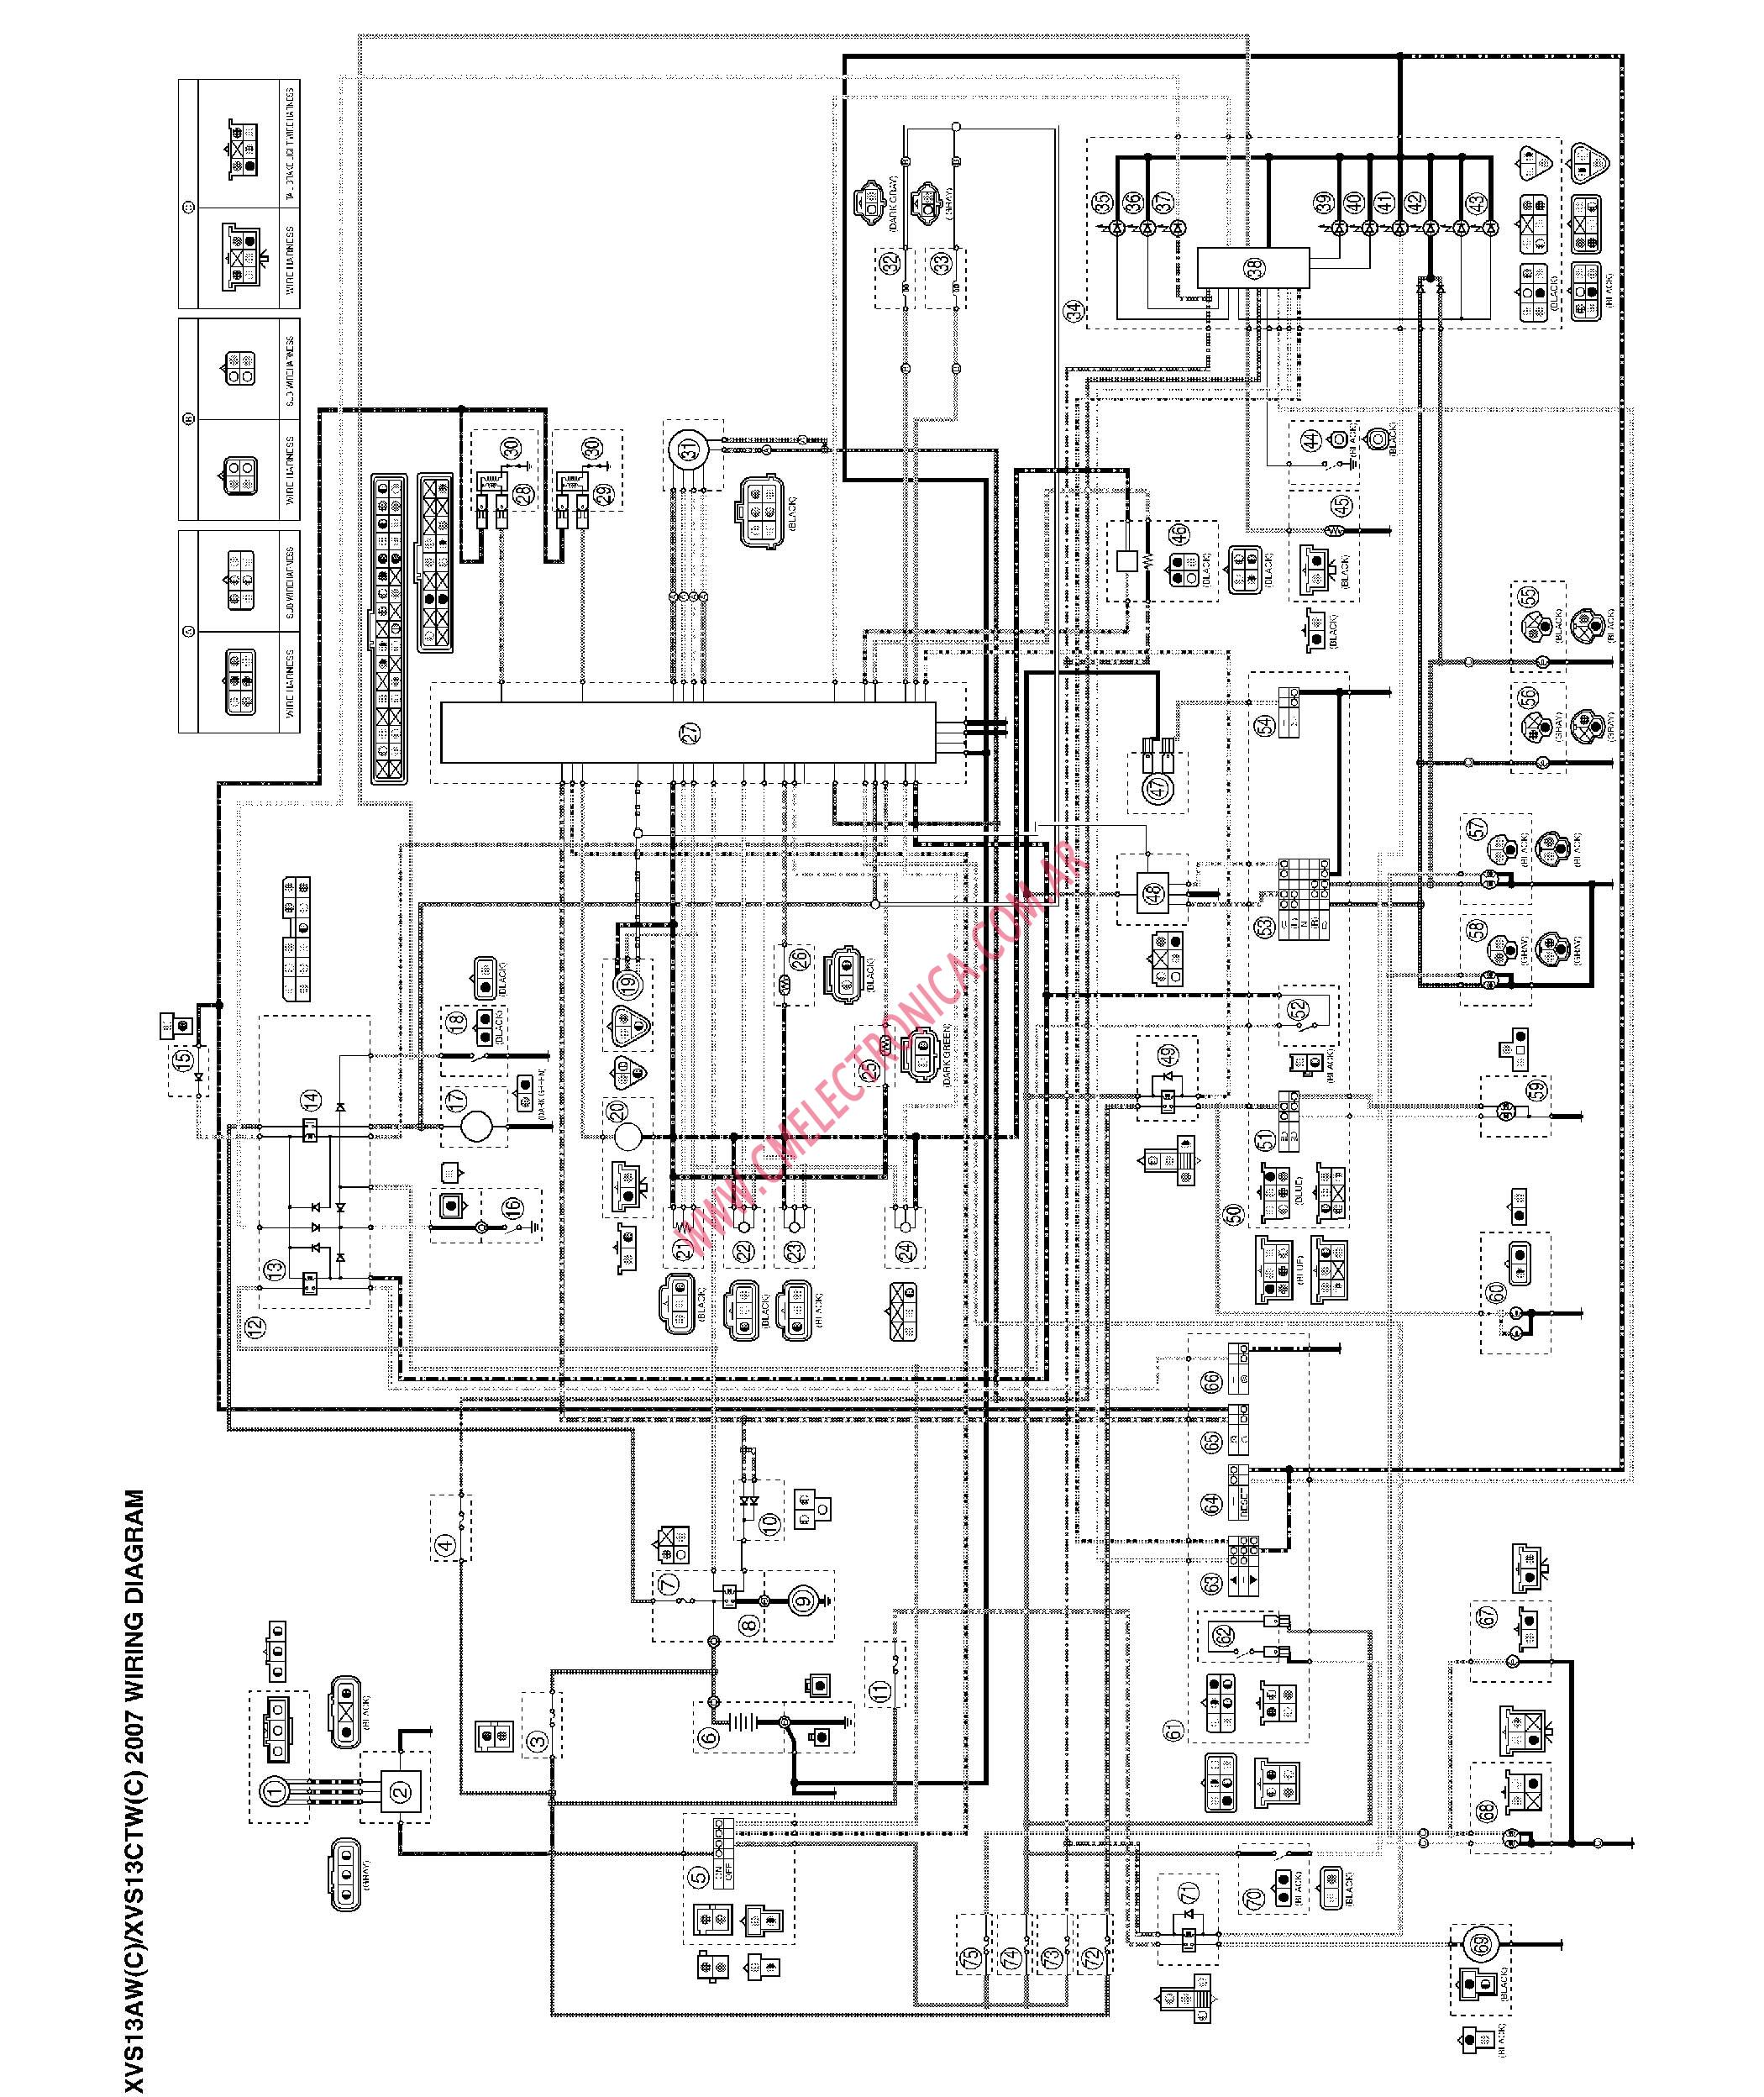 yamaha-xvs1300 Yamaha Outboard Wiring Diagram on kill switch, multifunction gauge, for 6hp, tilt trim gauge, digital tach, f25tlry, ford f150, f115txr, control box,